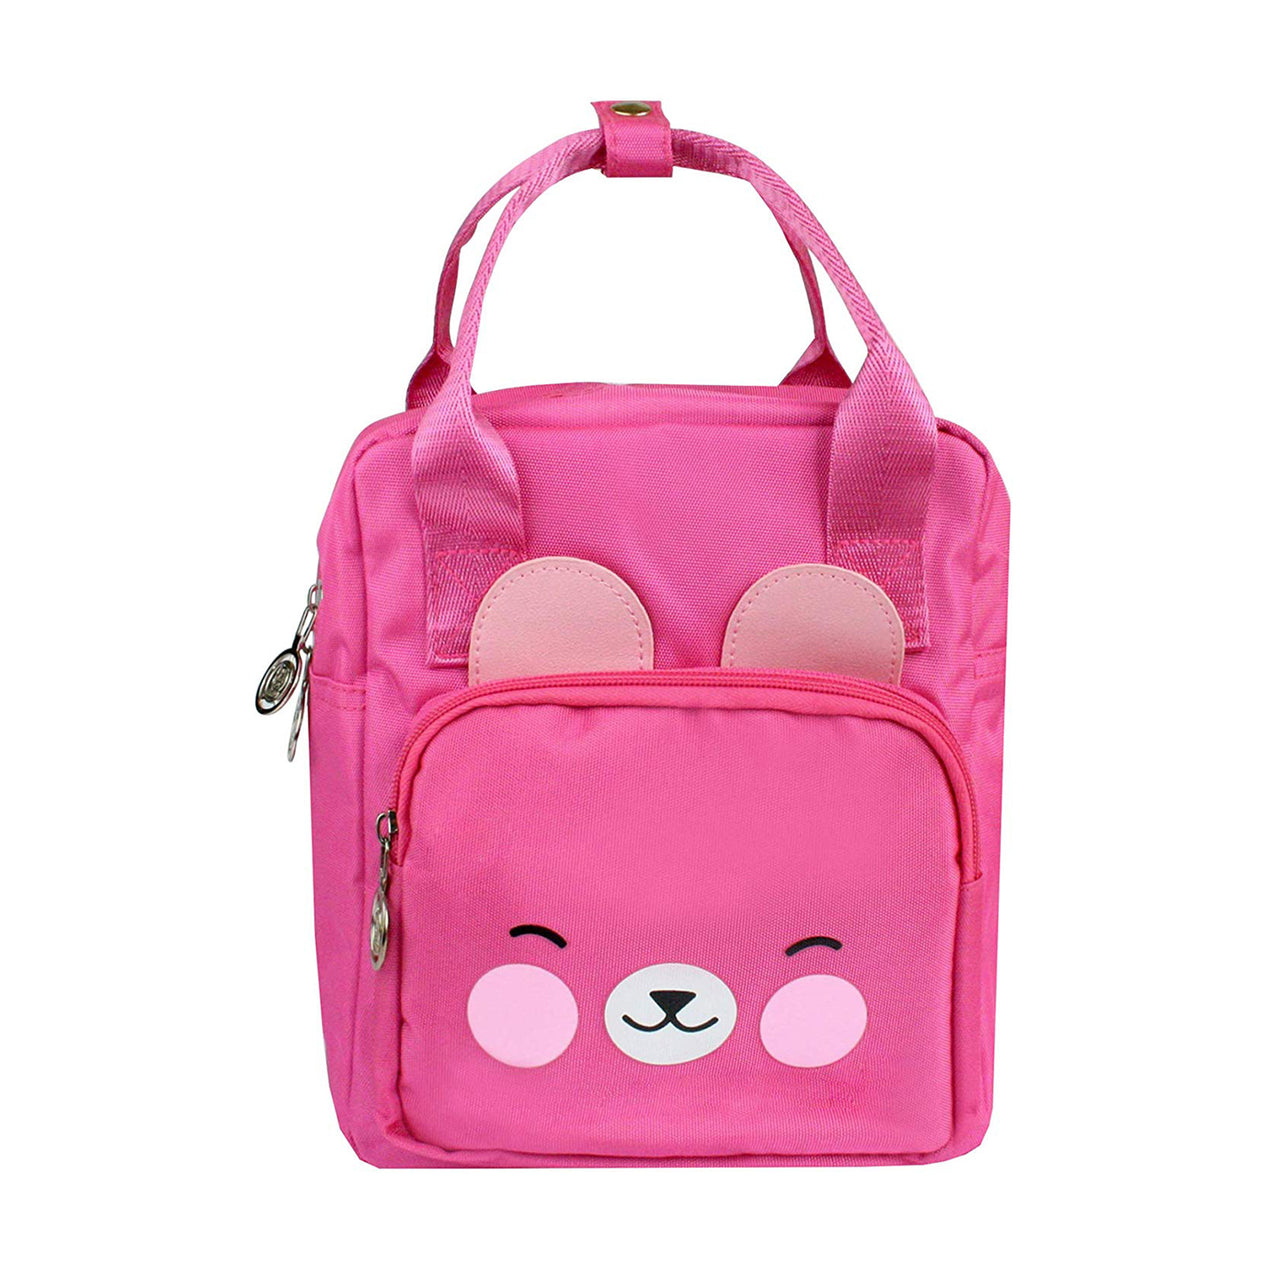 Teddy Bear Backpack - Pink